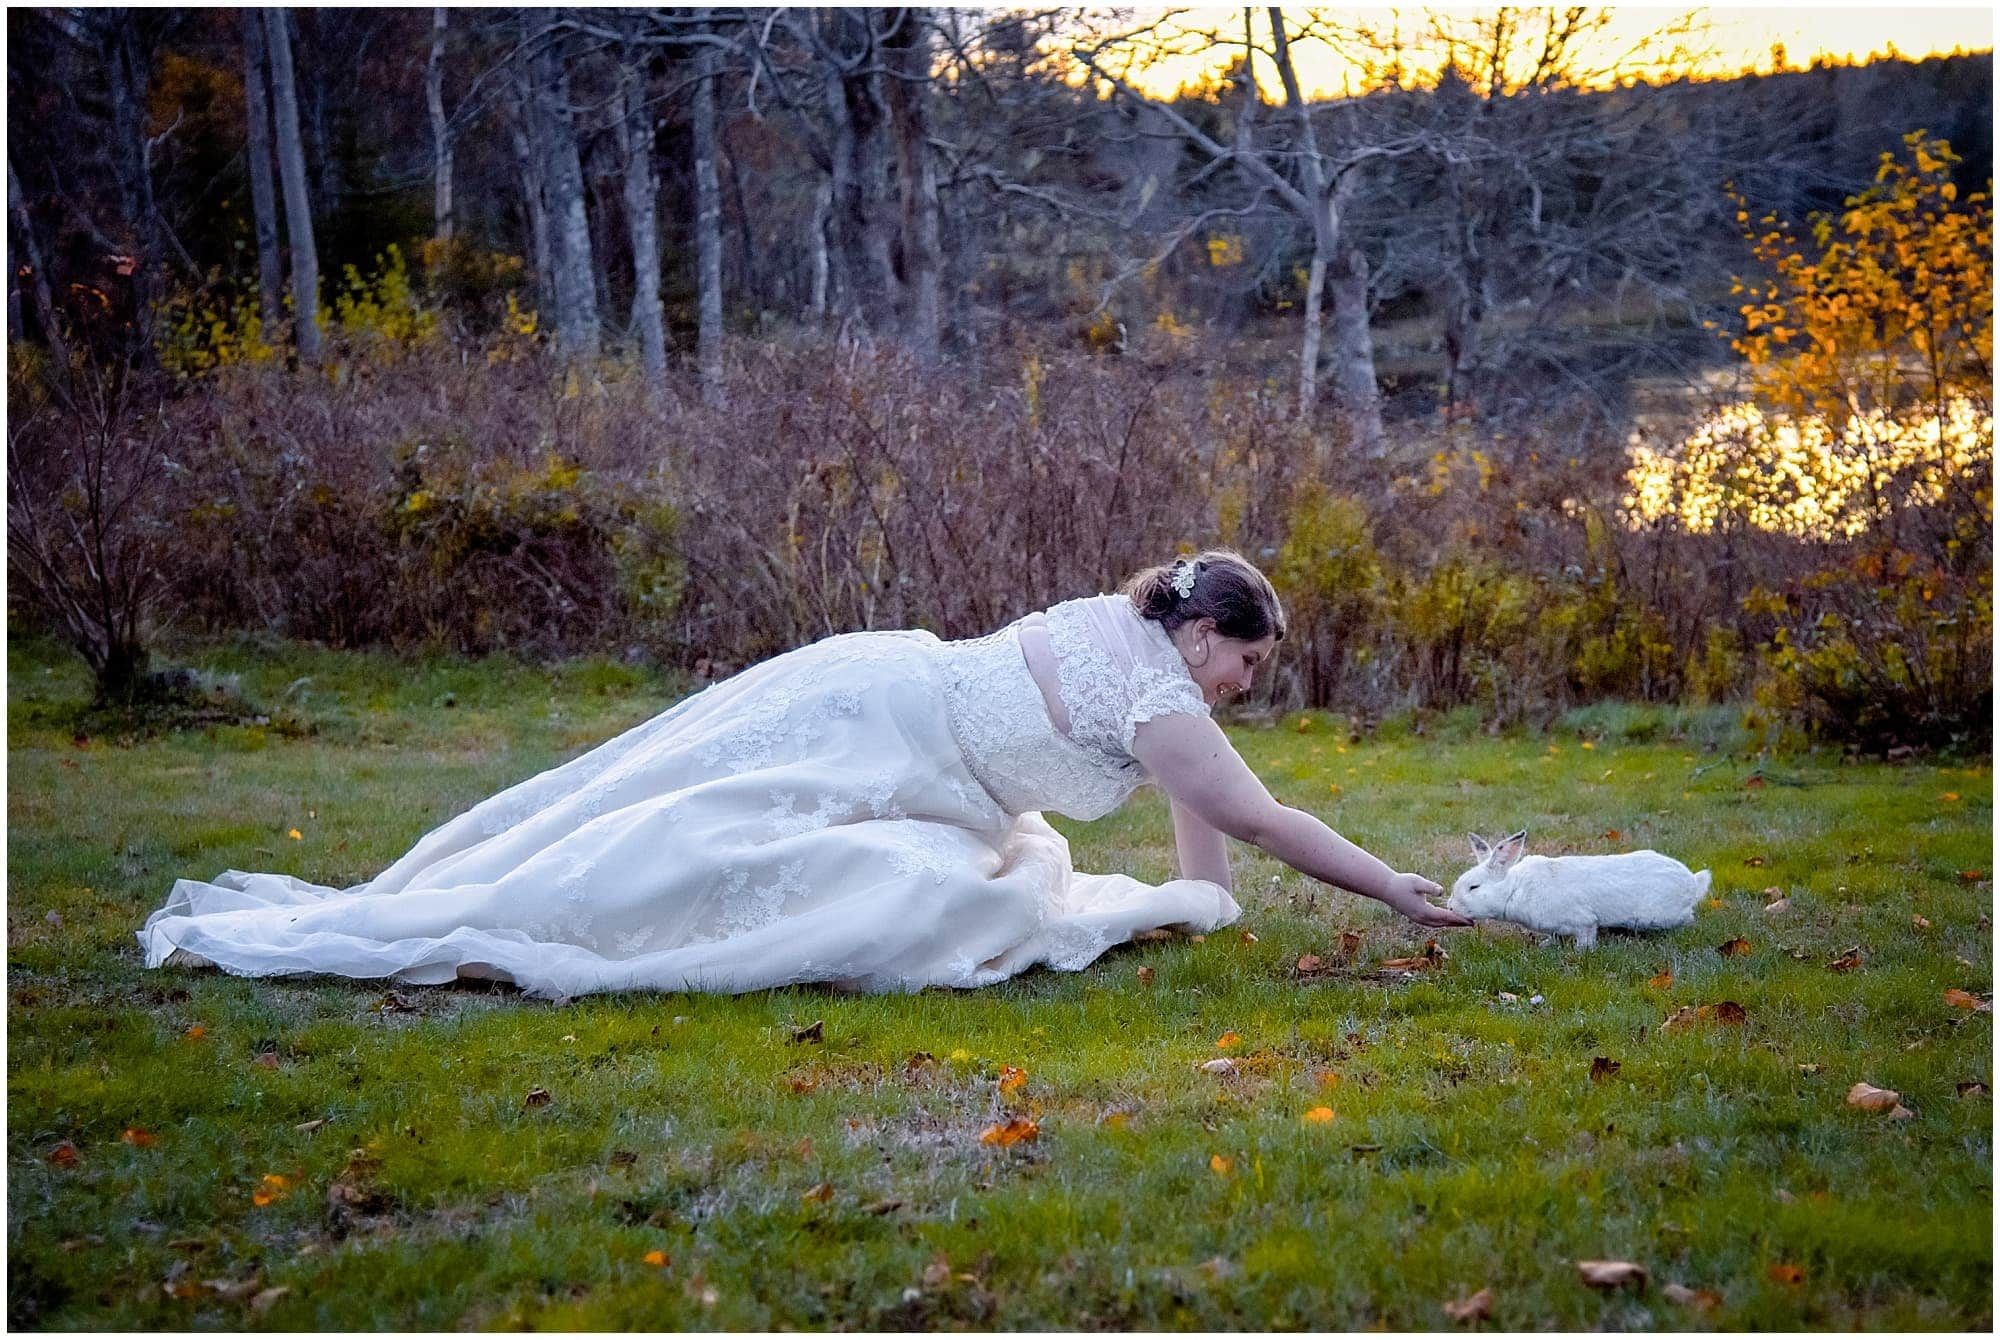 The bride feeding a bunny during her White Point wedding.